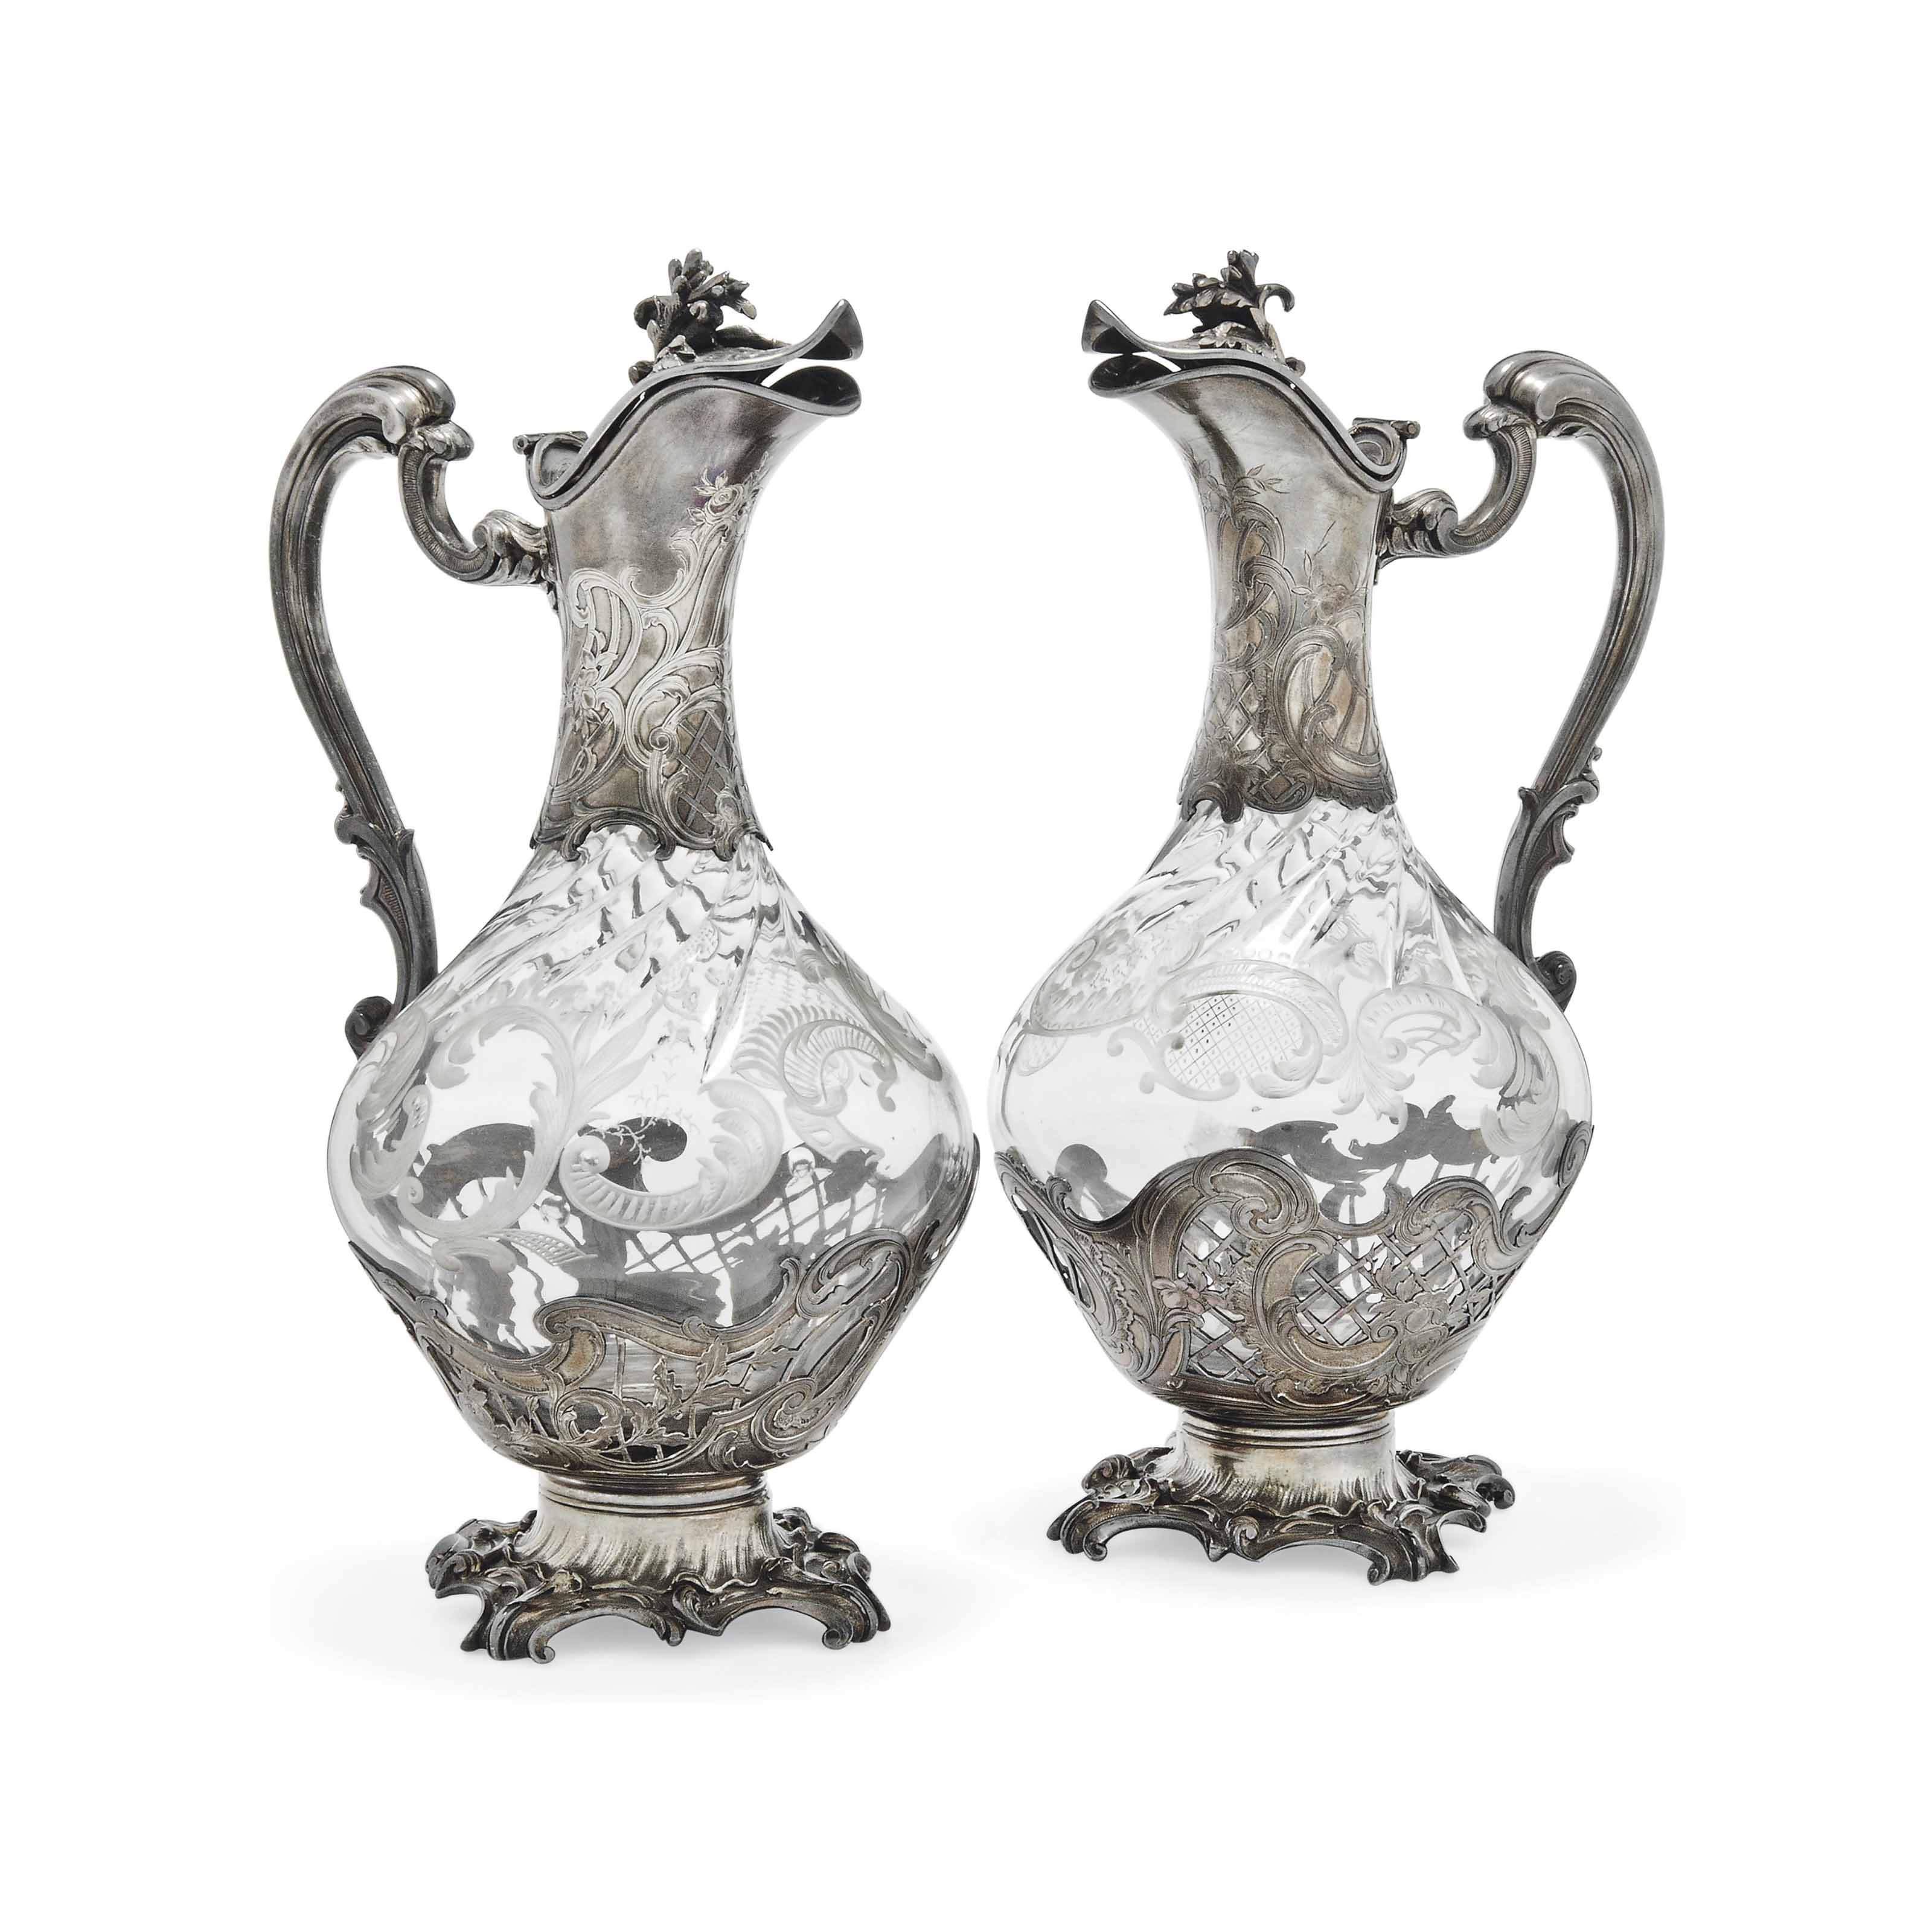 TWO VERY SIMILAR FRENCH SILVER